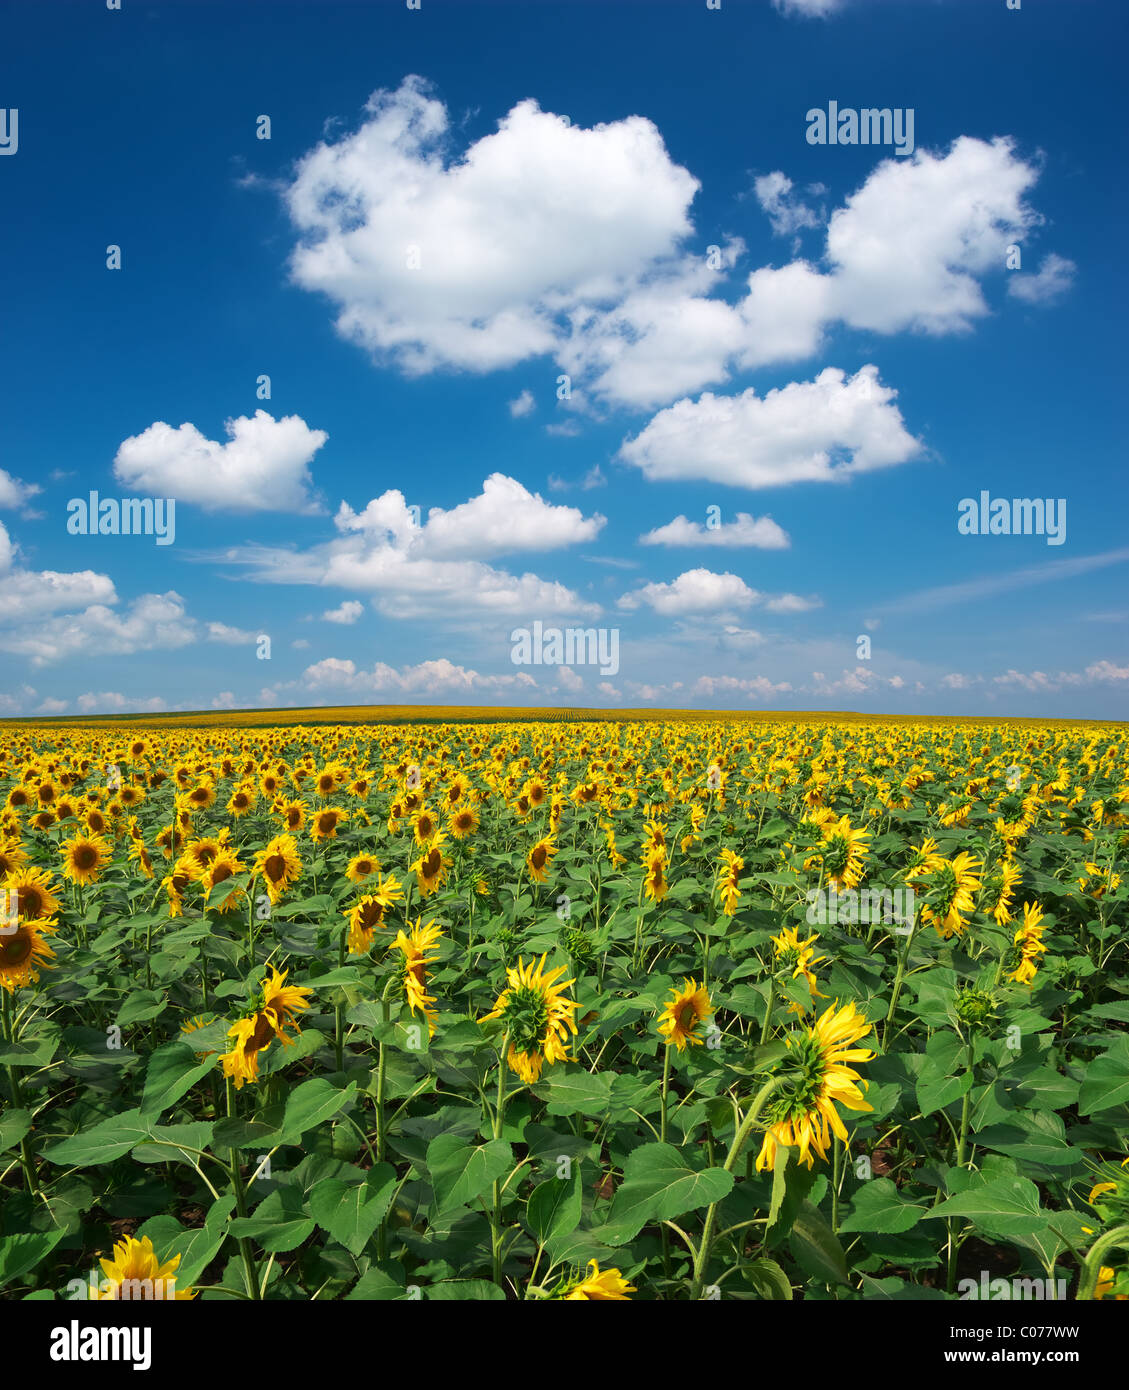 Grand champ de tournesols. Composition de la nature. Banque D'Images